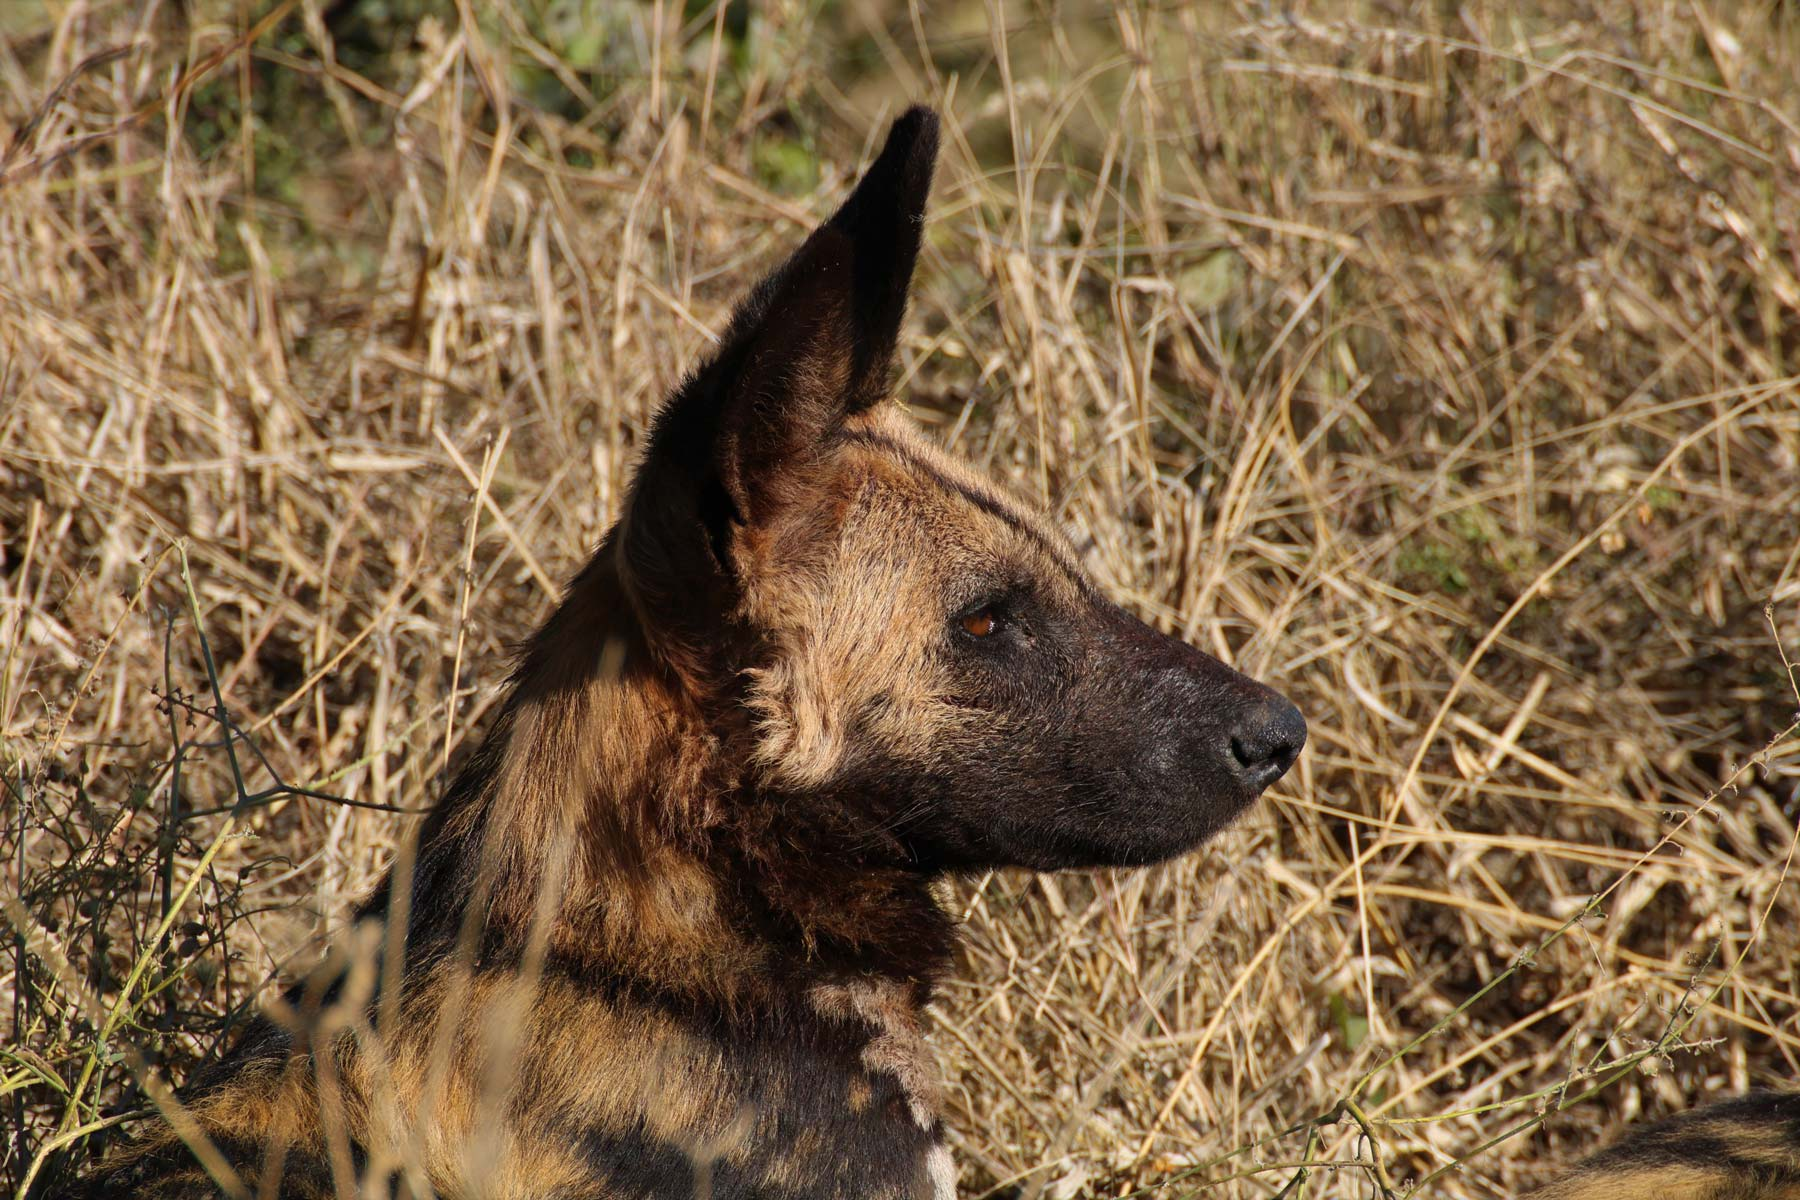 A portrait of an African Wild Dog's face - lying in grass and looking into the distance